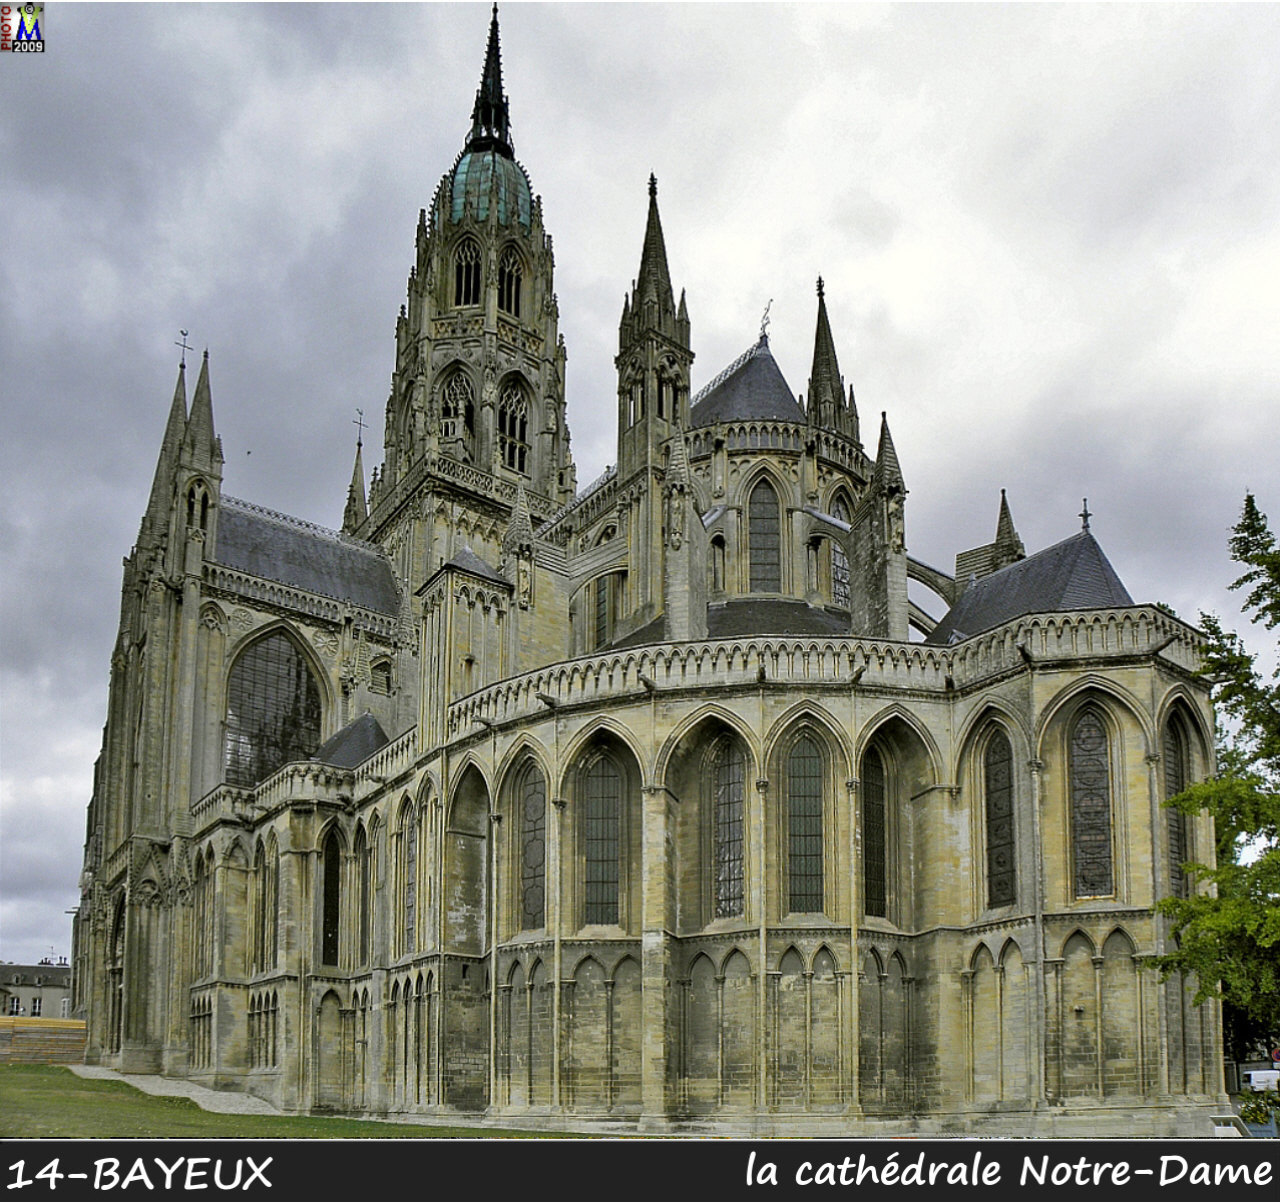 14BAYEUX_cathedrale_100.jpg